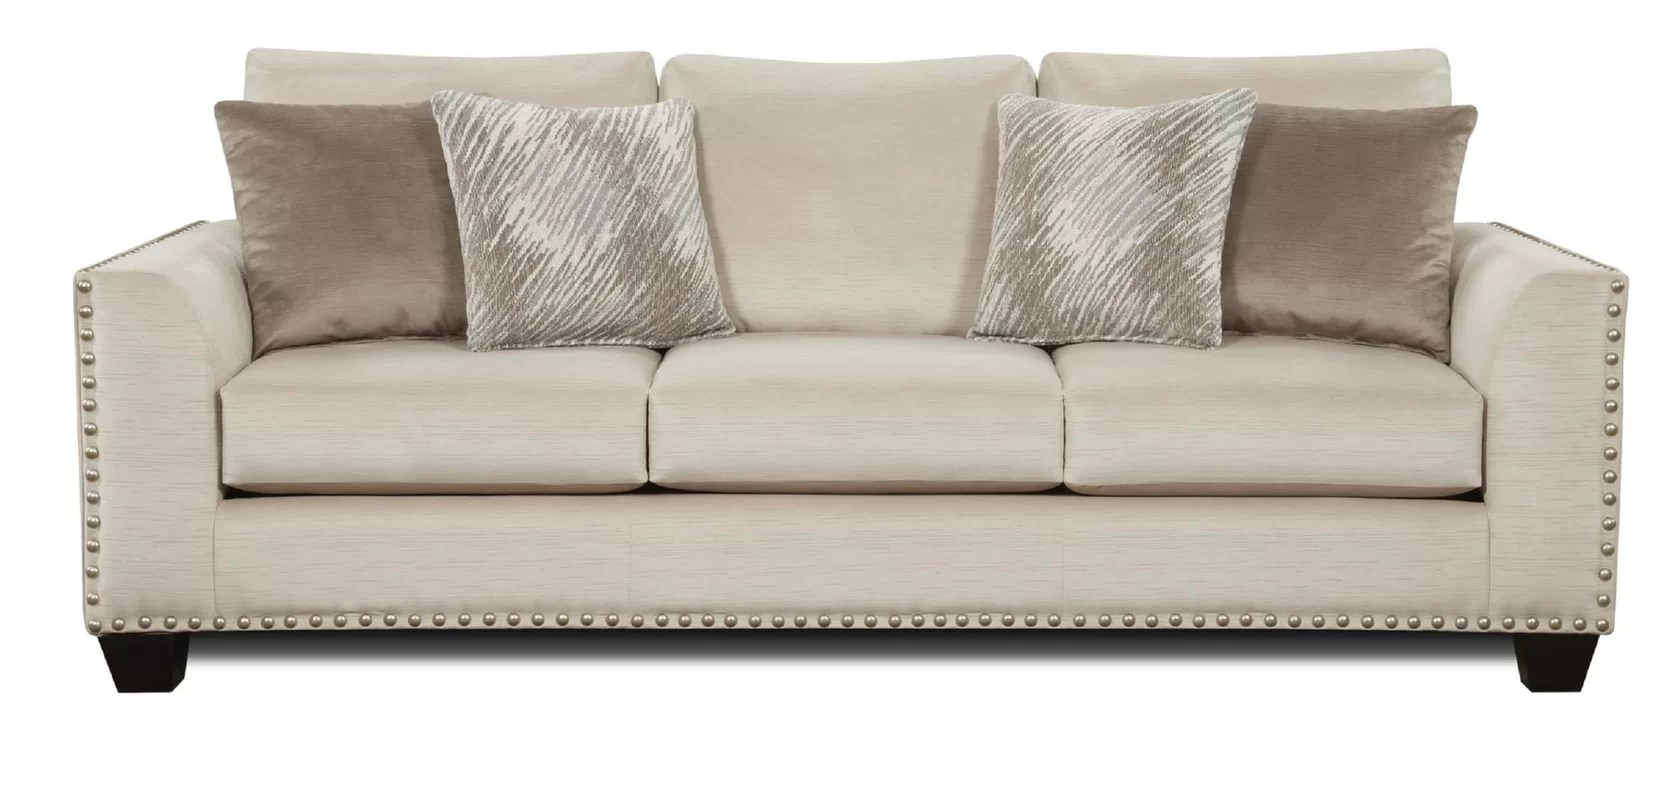 dwellstudio chester sofa black faux leather futon purchase online wareham by chelsea home furniture